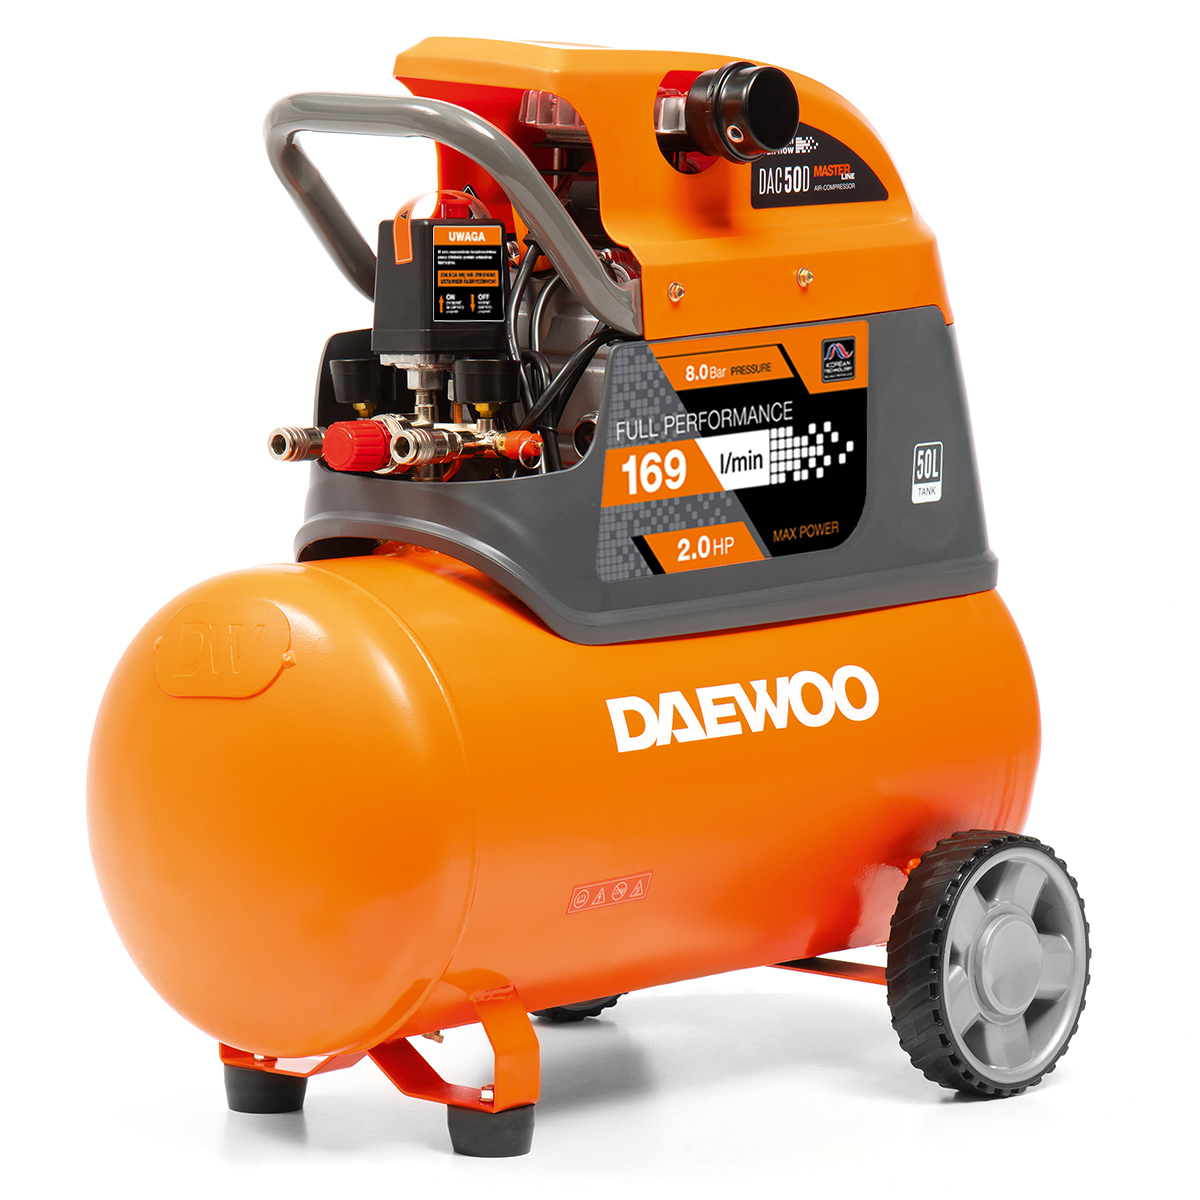 Air Compressor Daewoo DAC 50D